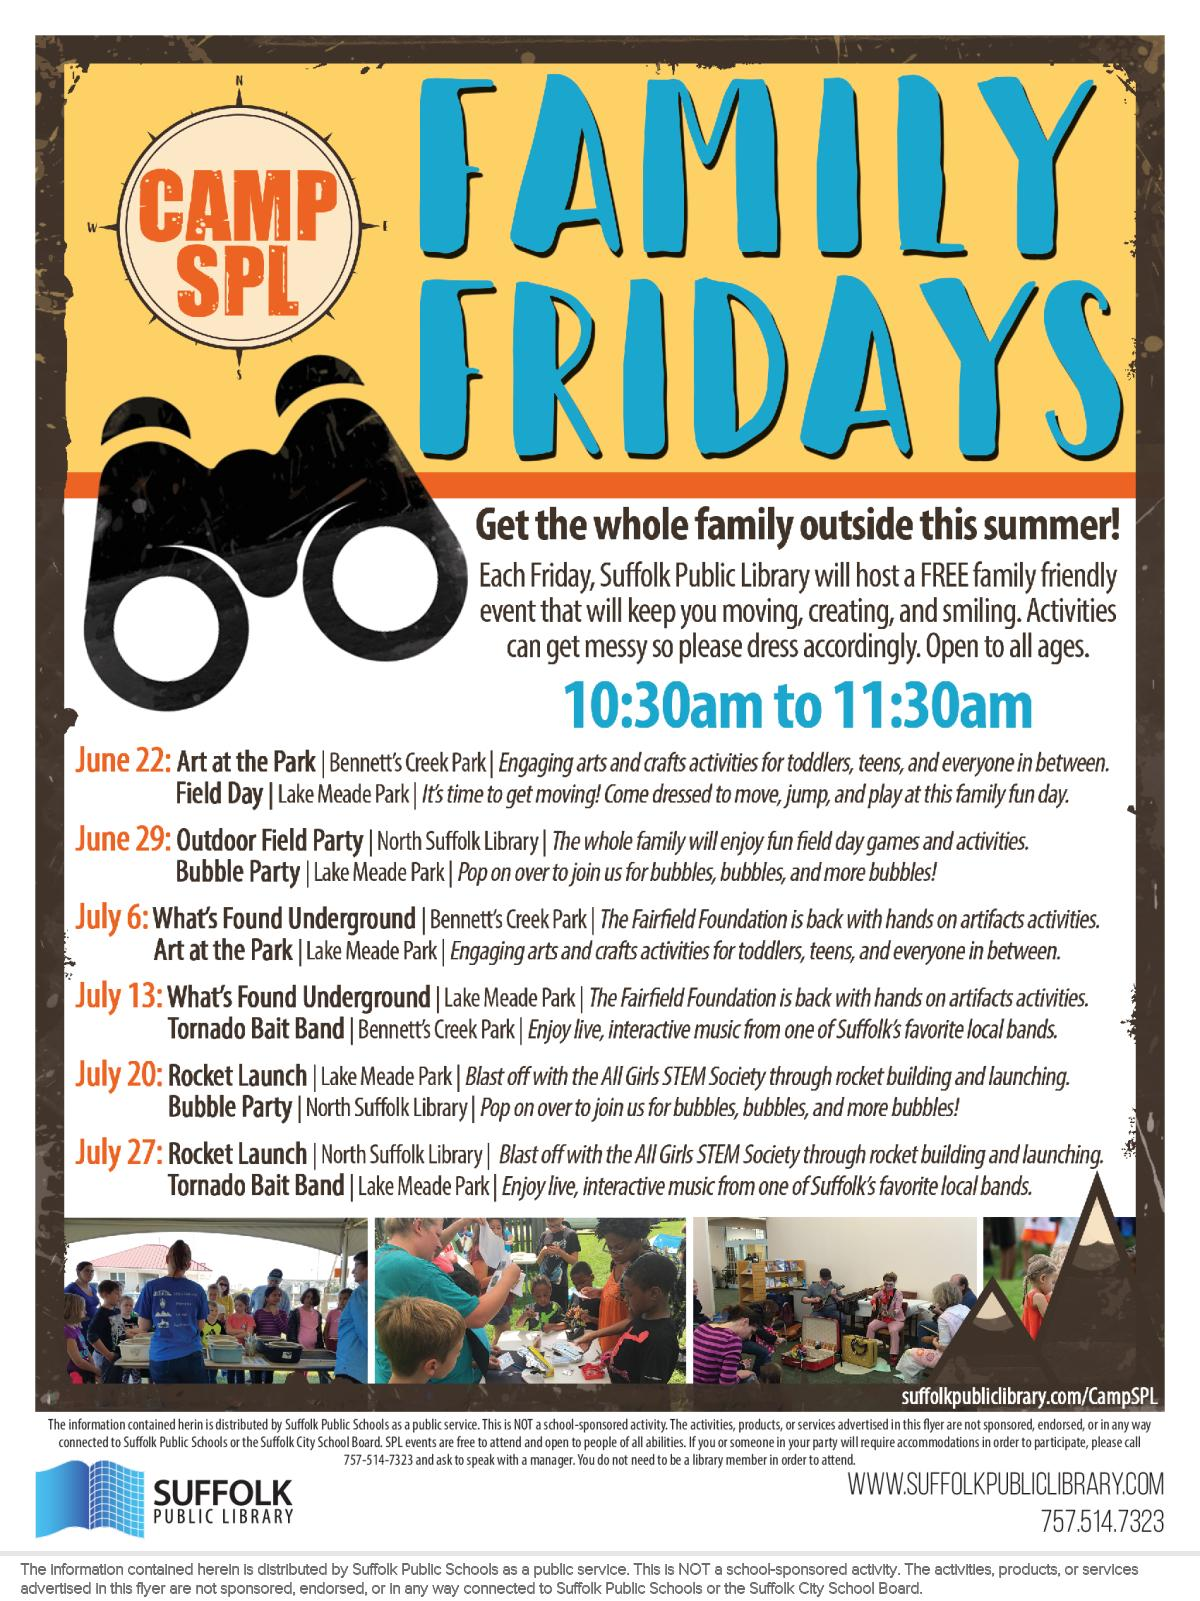 Image of a flyer titled Camp SPL Family Fridays